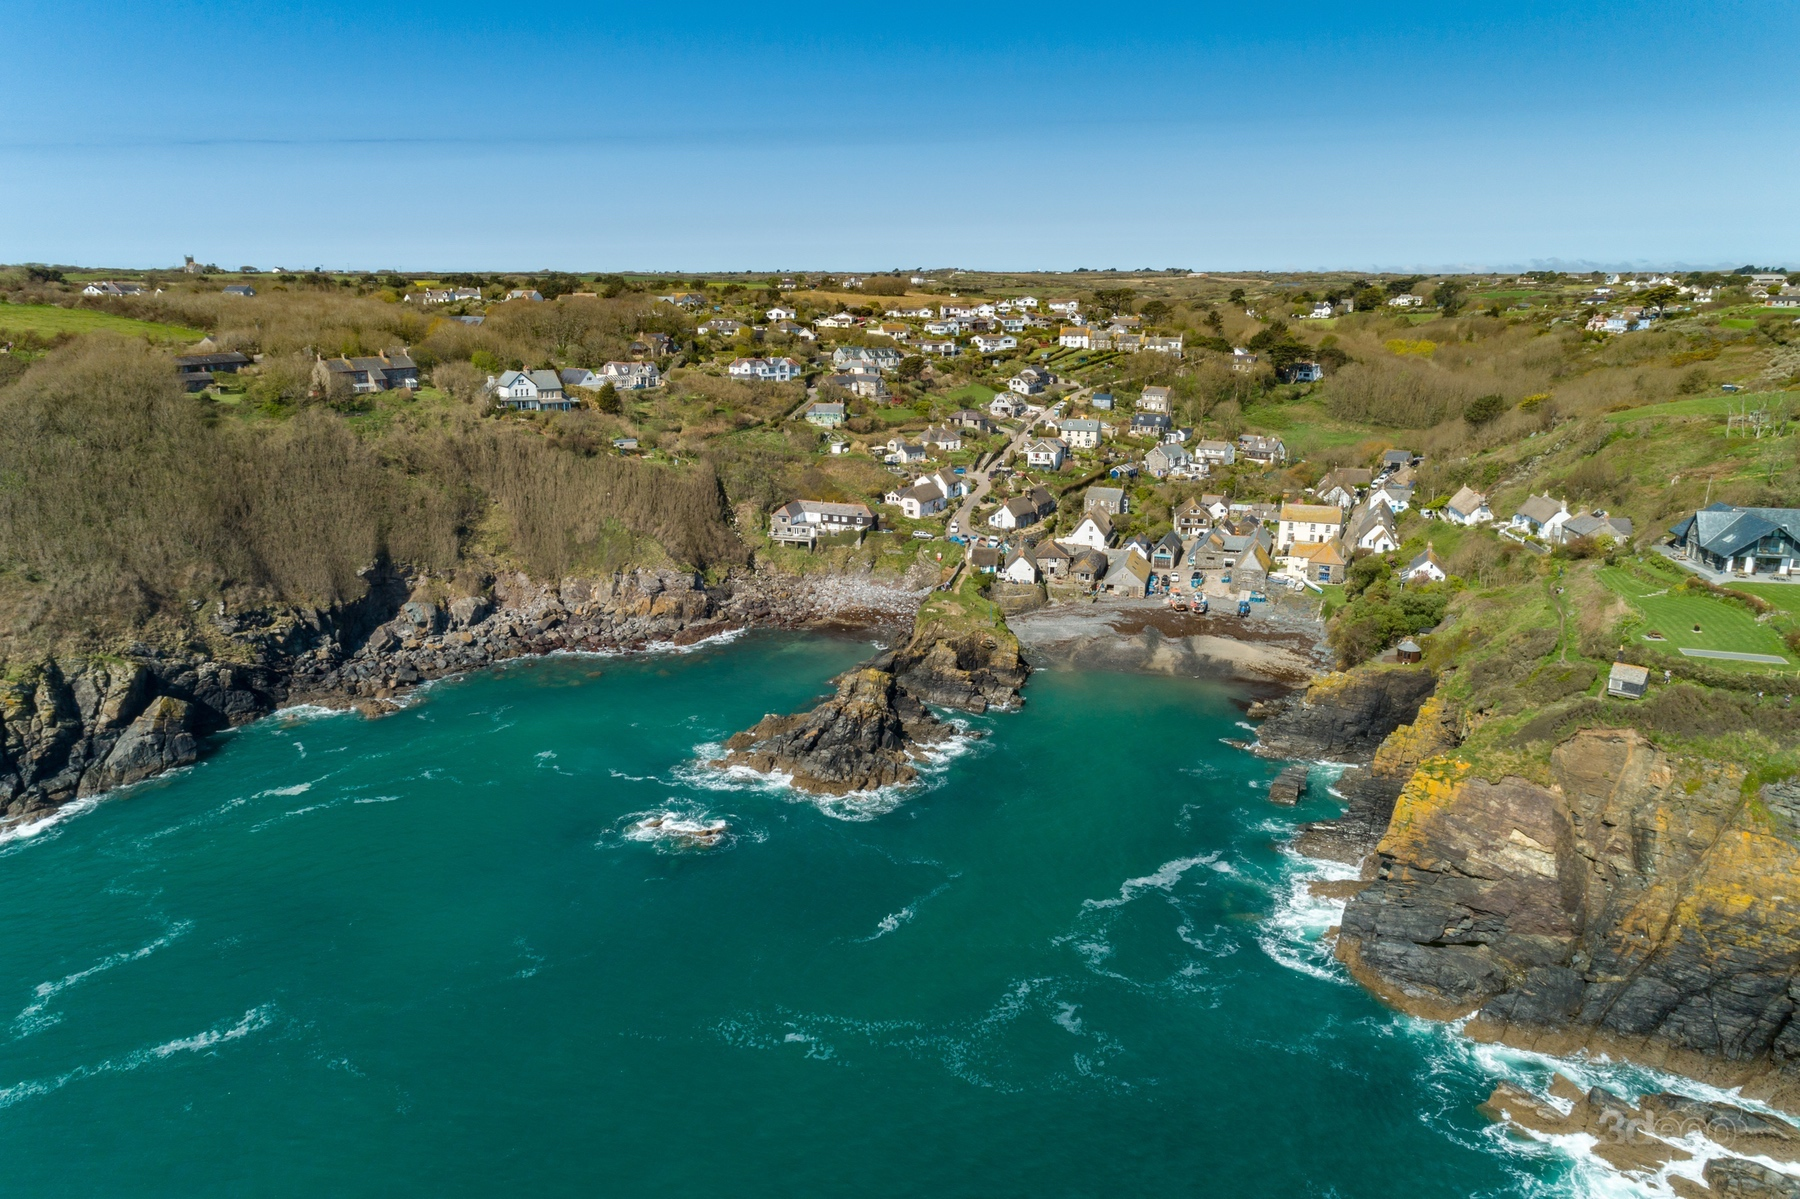 Aerial & Ground Based Photography Services Cornwall